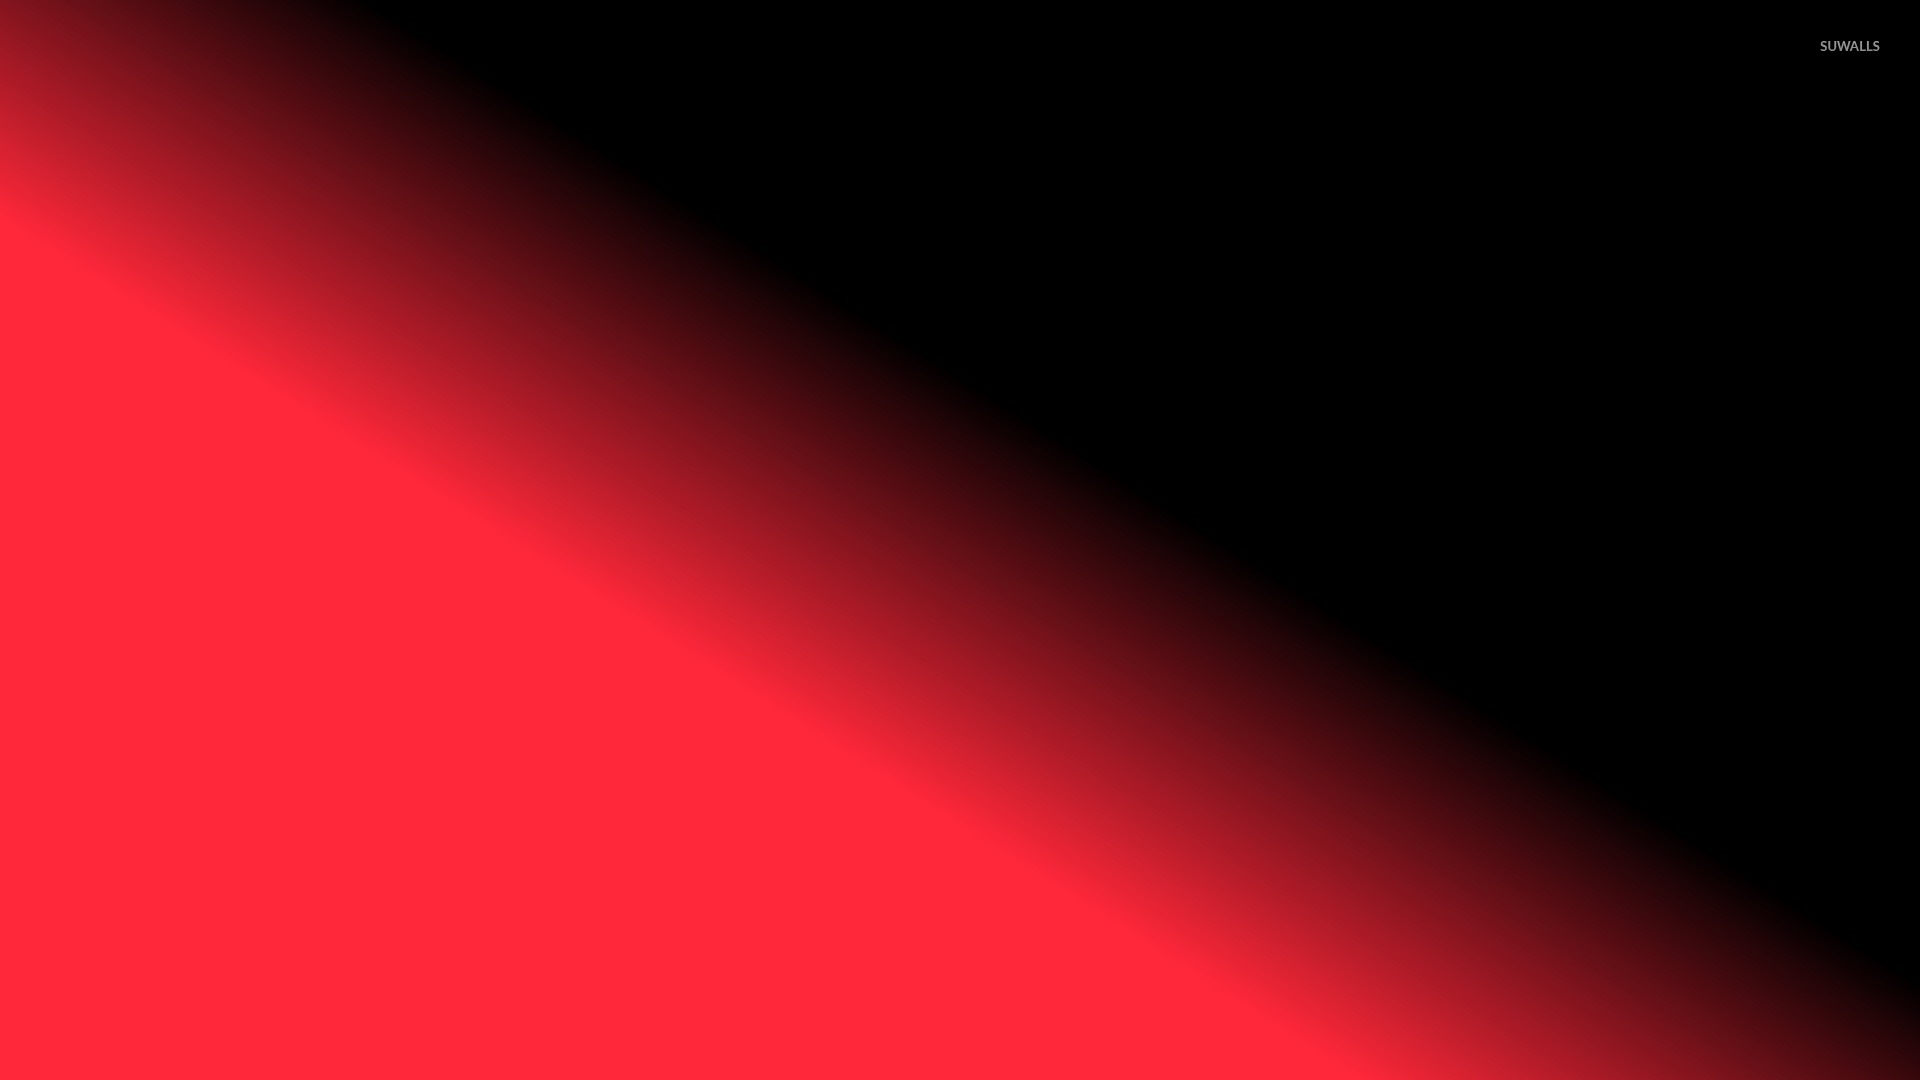 red sun glowing into the darkness wallpaper minimalistic